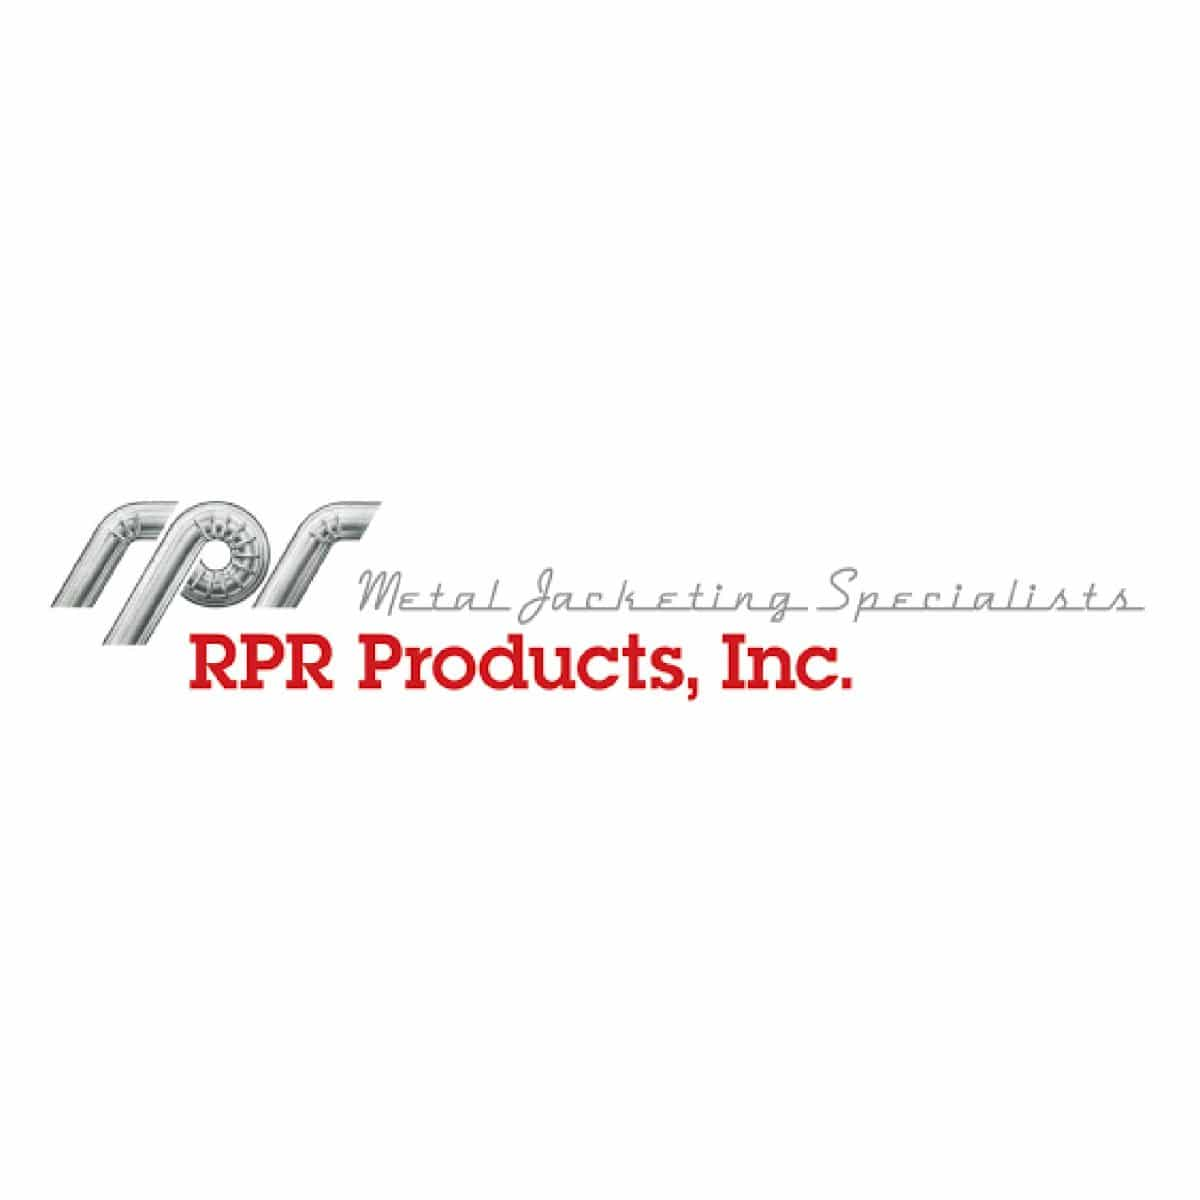 RPR Products, Inc.